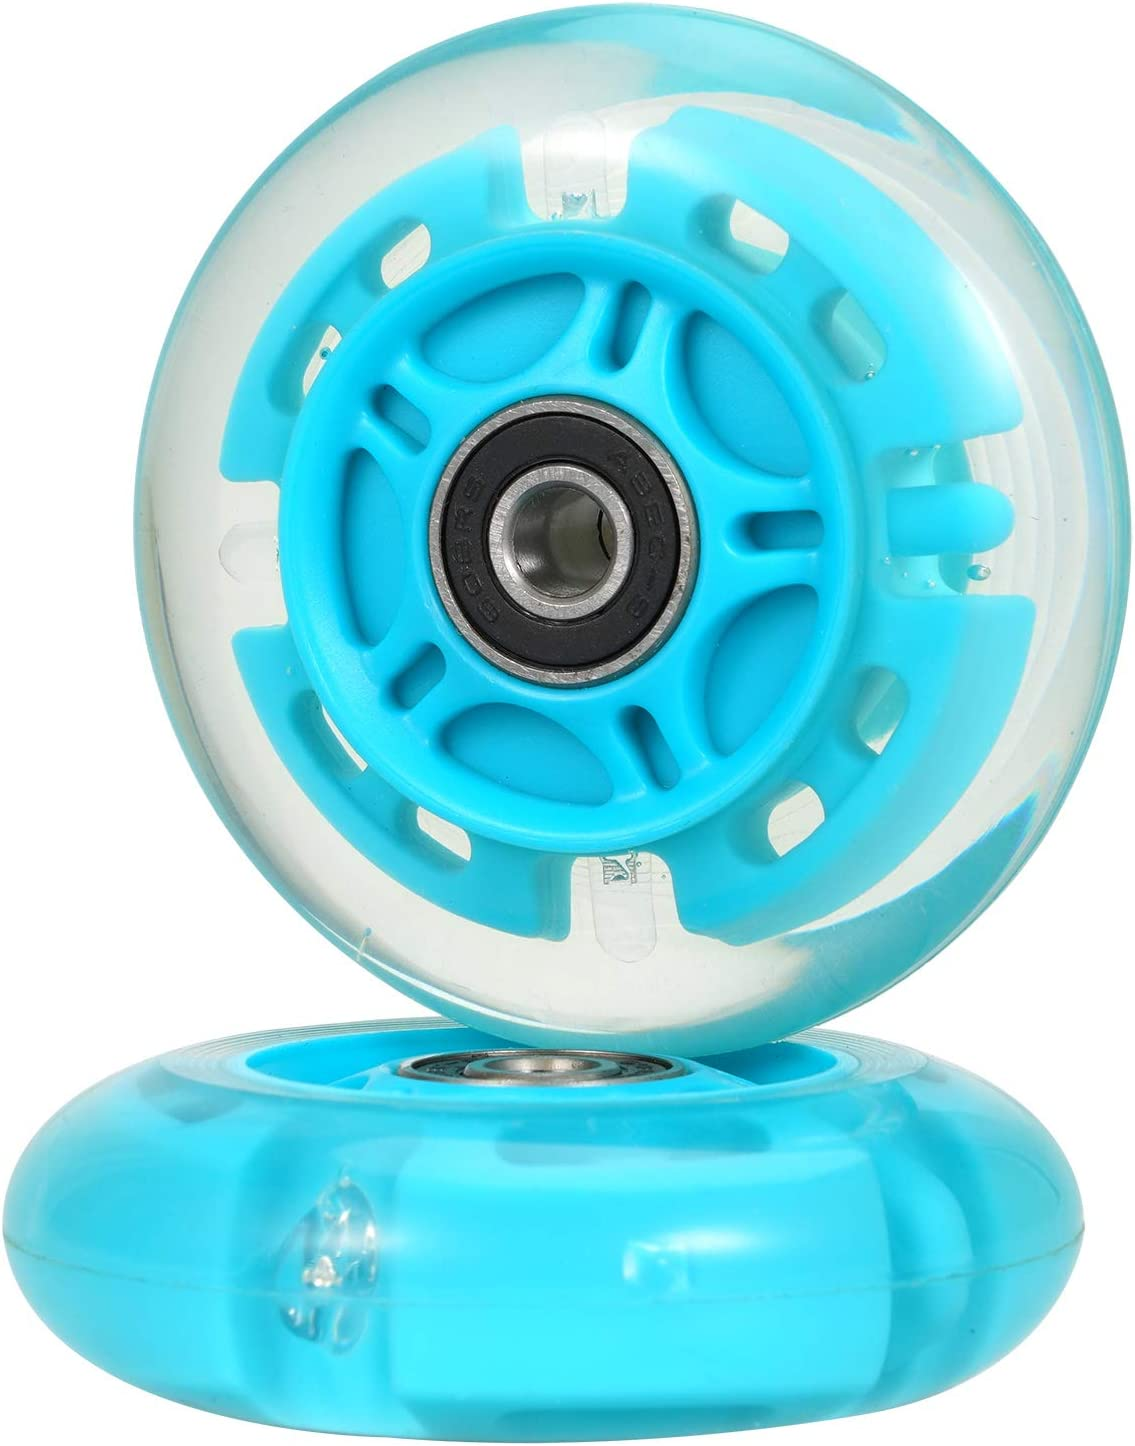 80mm Led Flashing Wheels Replacement for Inline Skate and Kick Scooter Installed Abec9 Bearing kutrick 80mm Inline Skate Wheels Kick Scooter Rear Wheels Replacement Pair